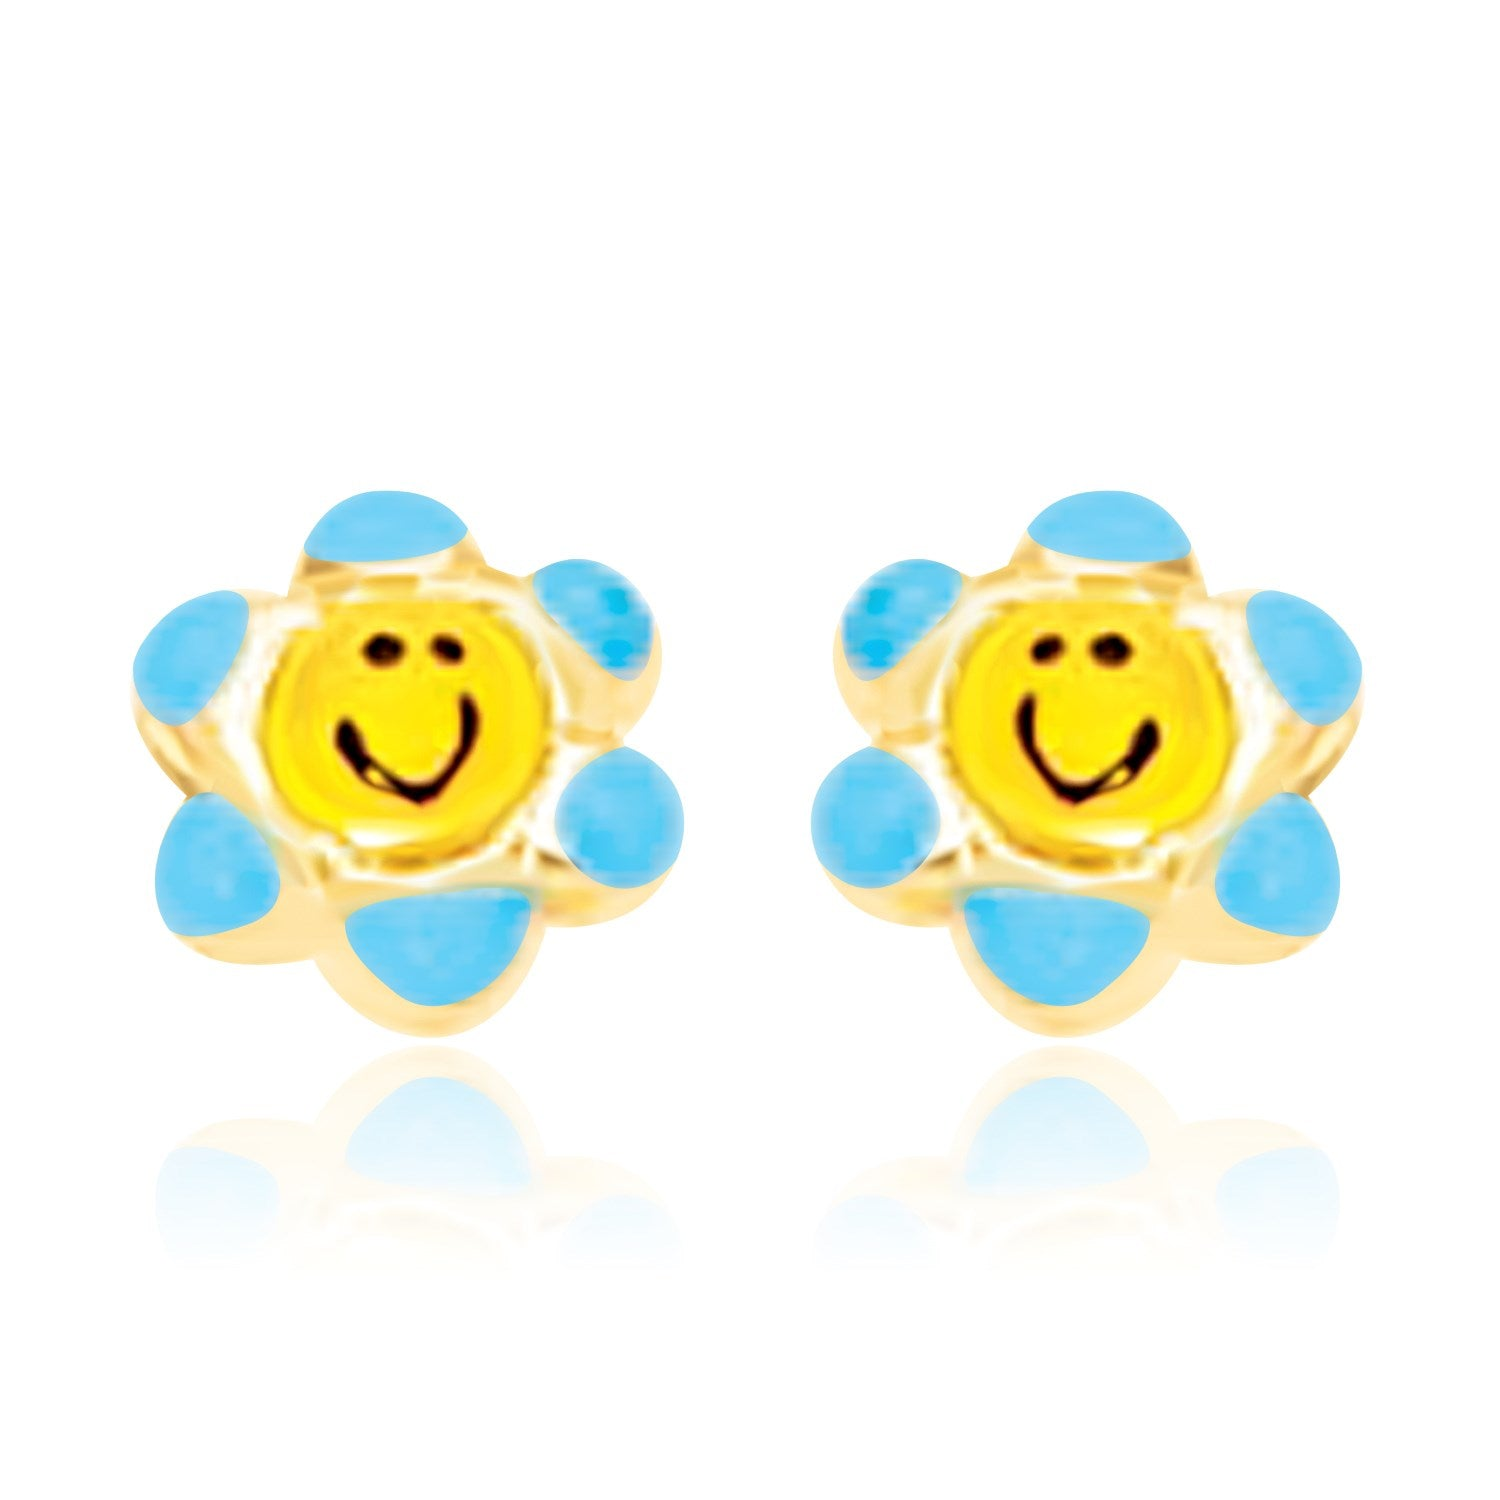 14K Yellow Gold Blue and Yellow Floral Smiley Face Earrings